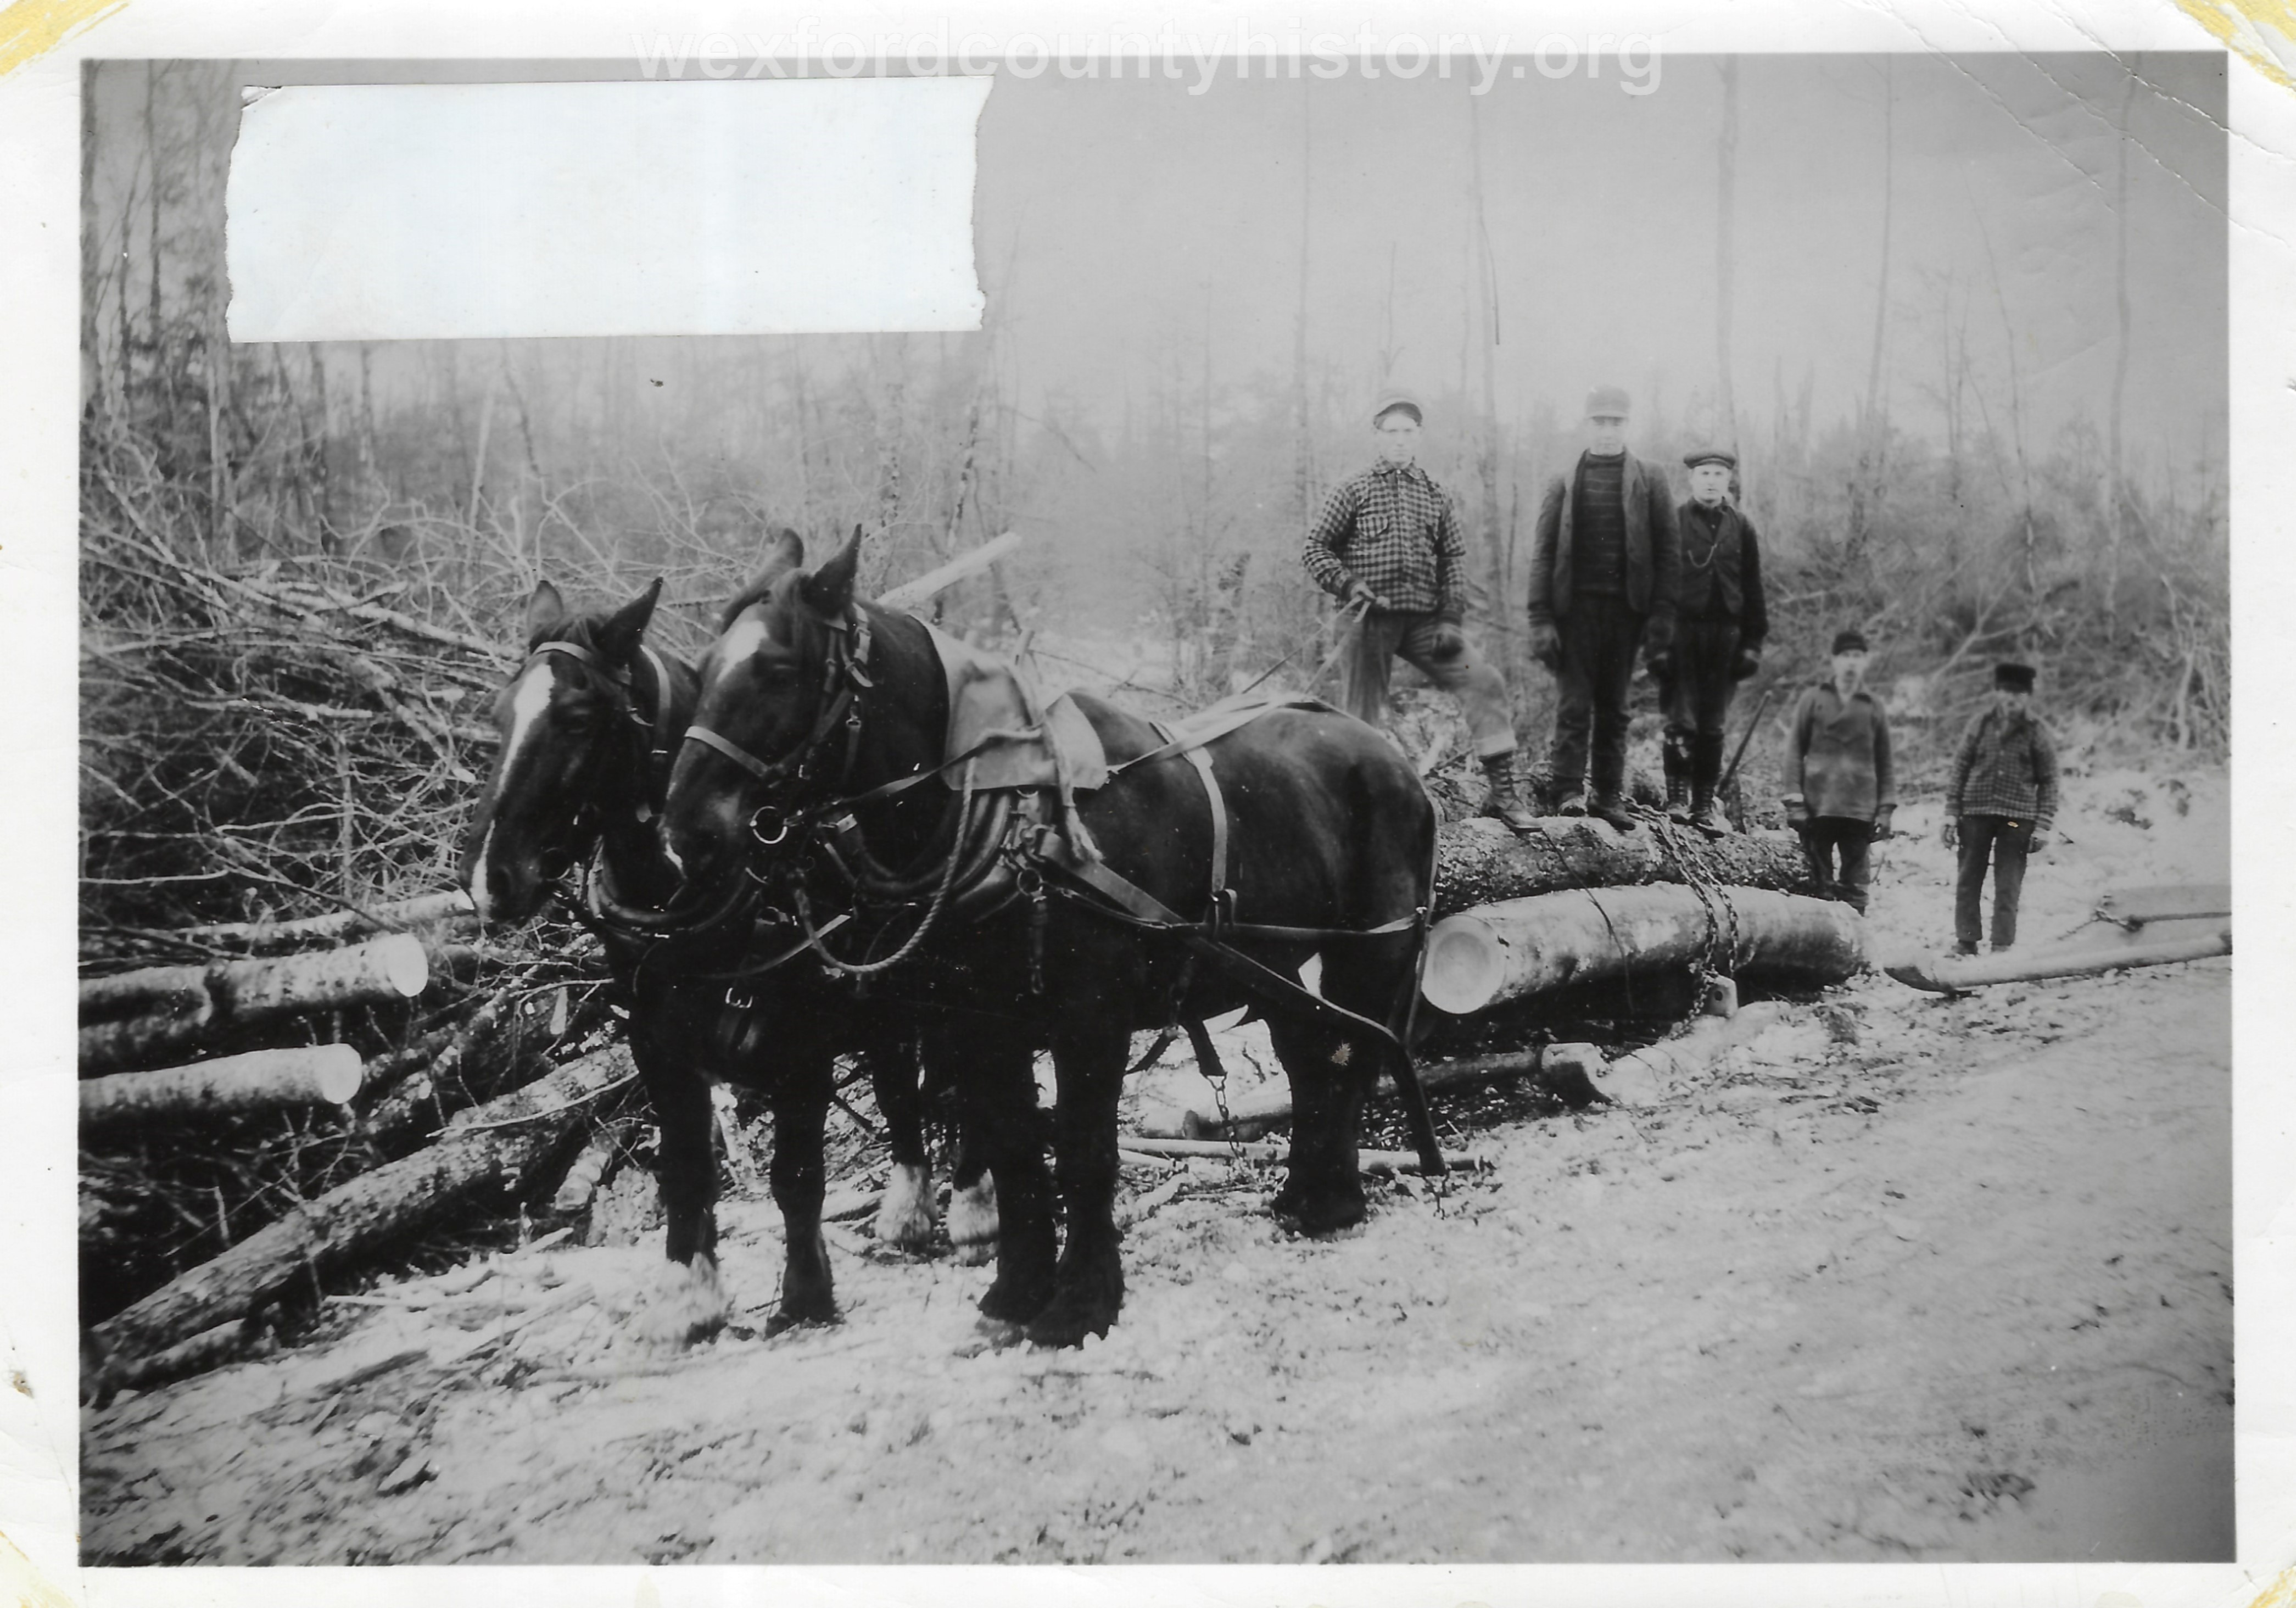 Cadillac-Lumber-Horse-Team-Pulling-Load-Of-Logs-On-Sled-3